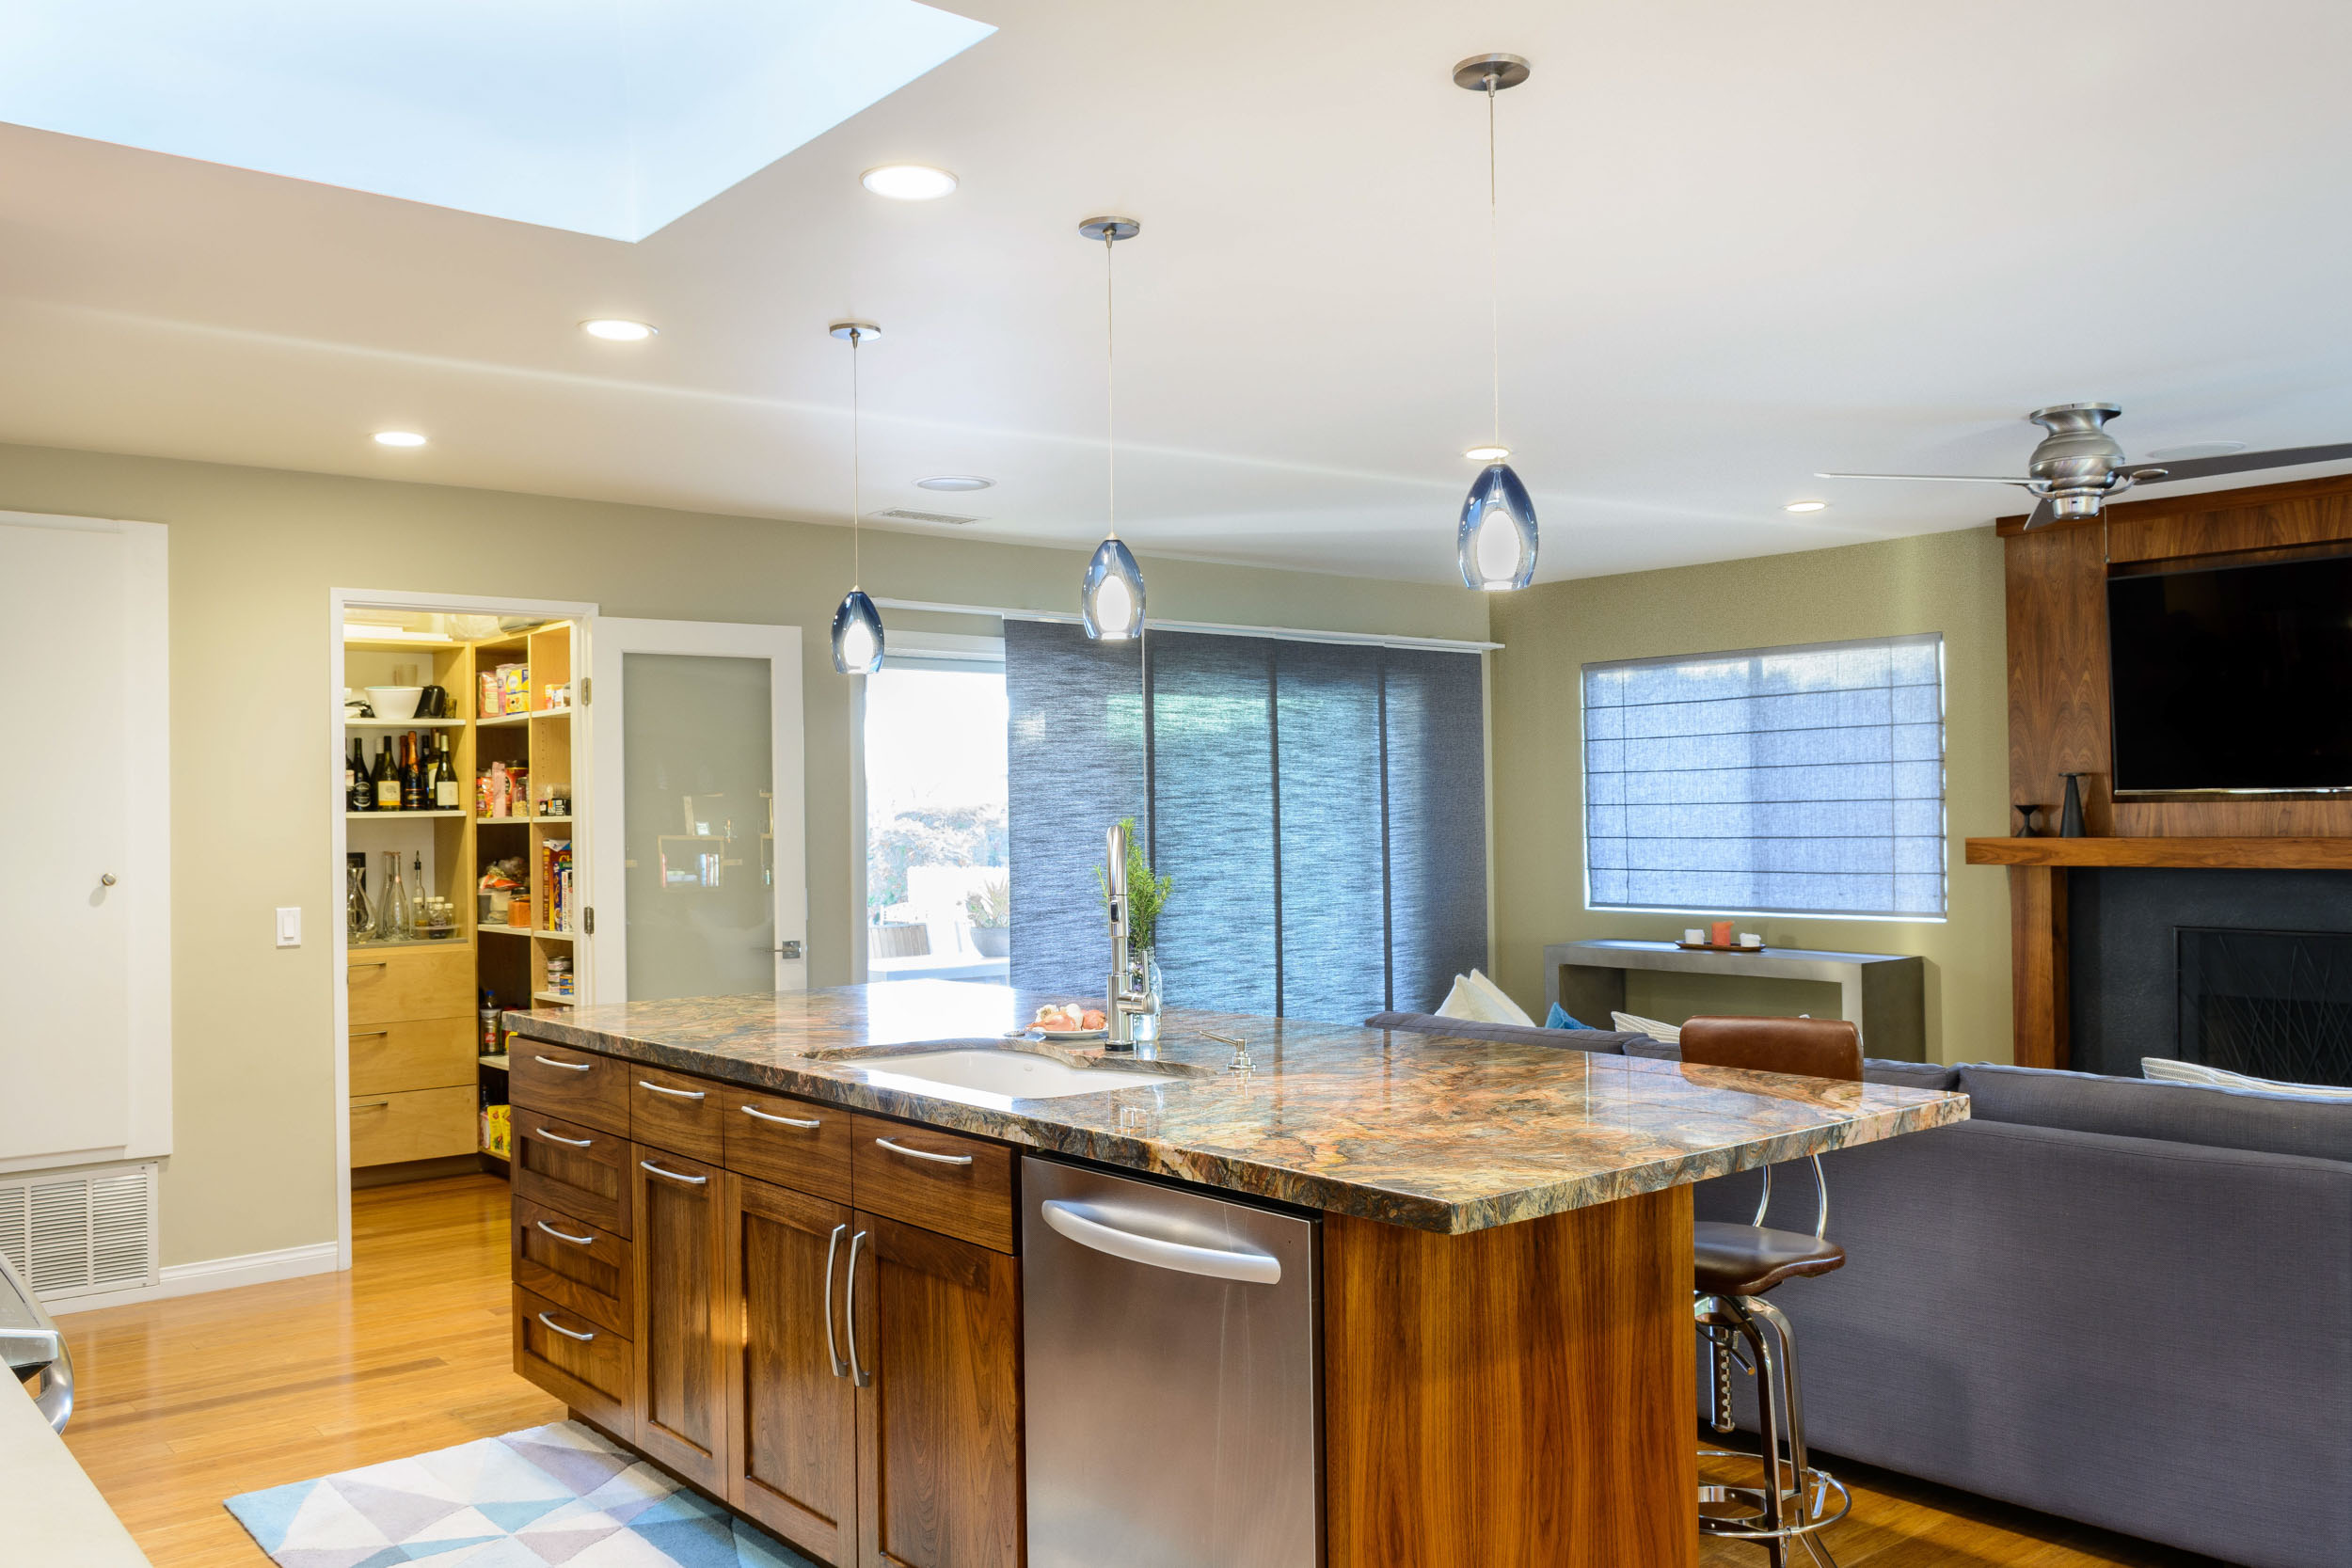 Great room kitchen remodel: the island, set as an anchor in this open floor plan, provides a seamless flow between the kitchen, pantry, living room and patio area